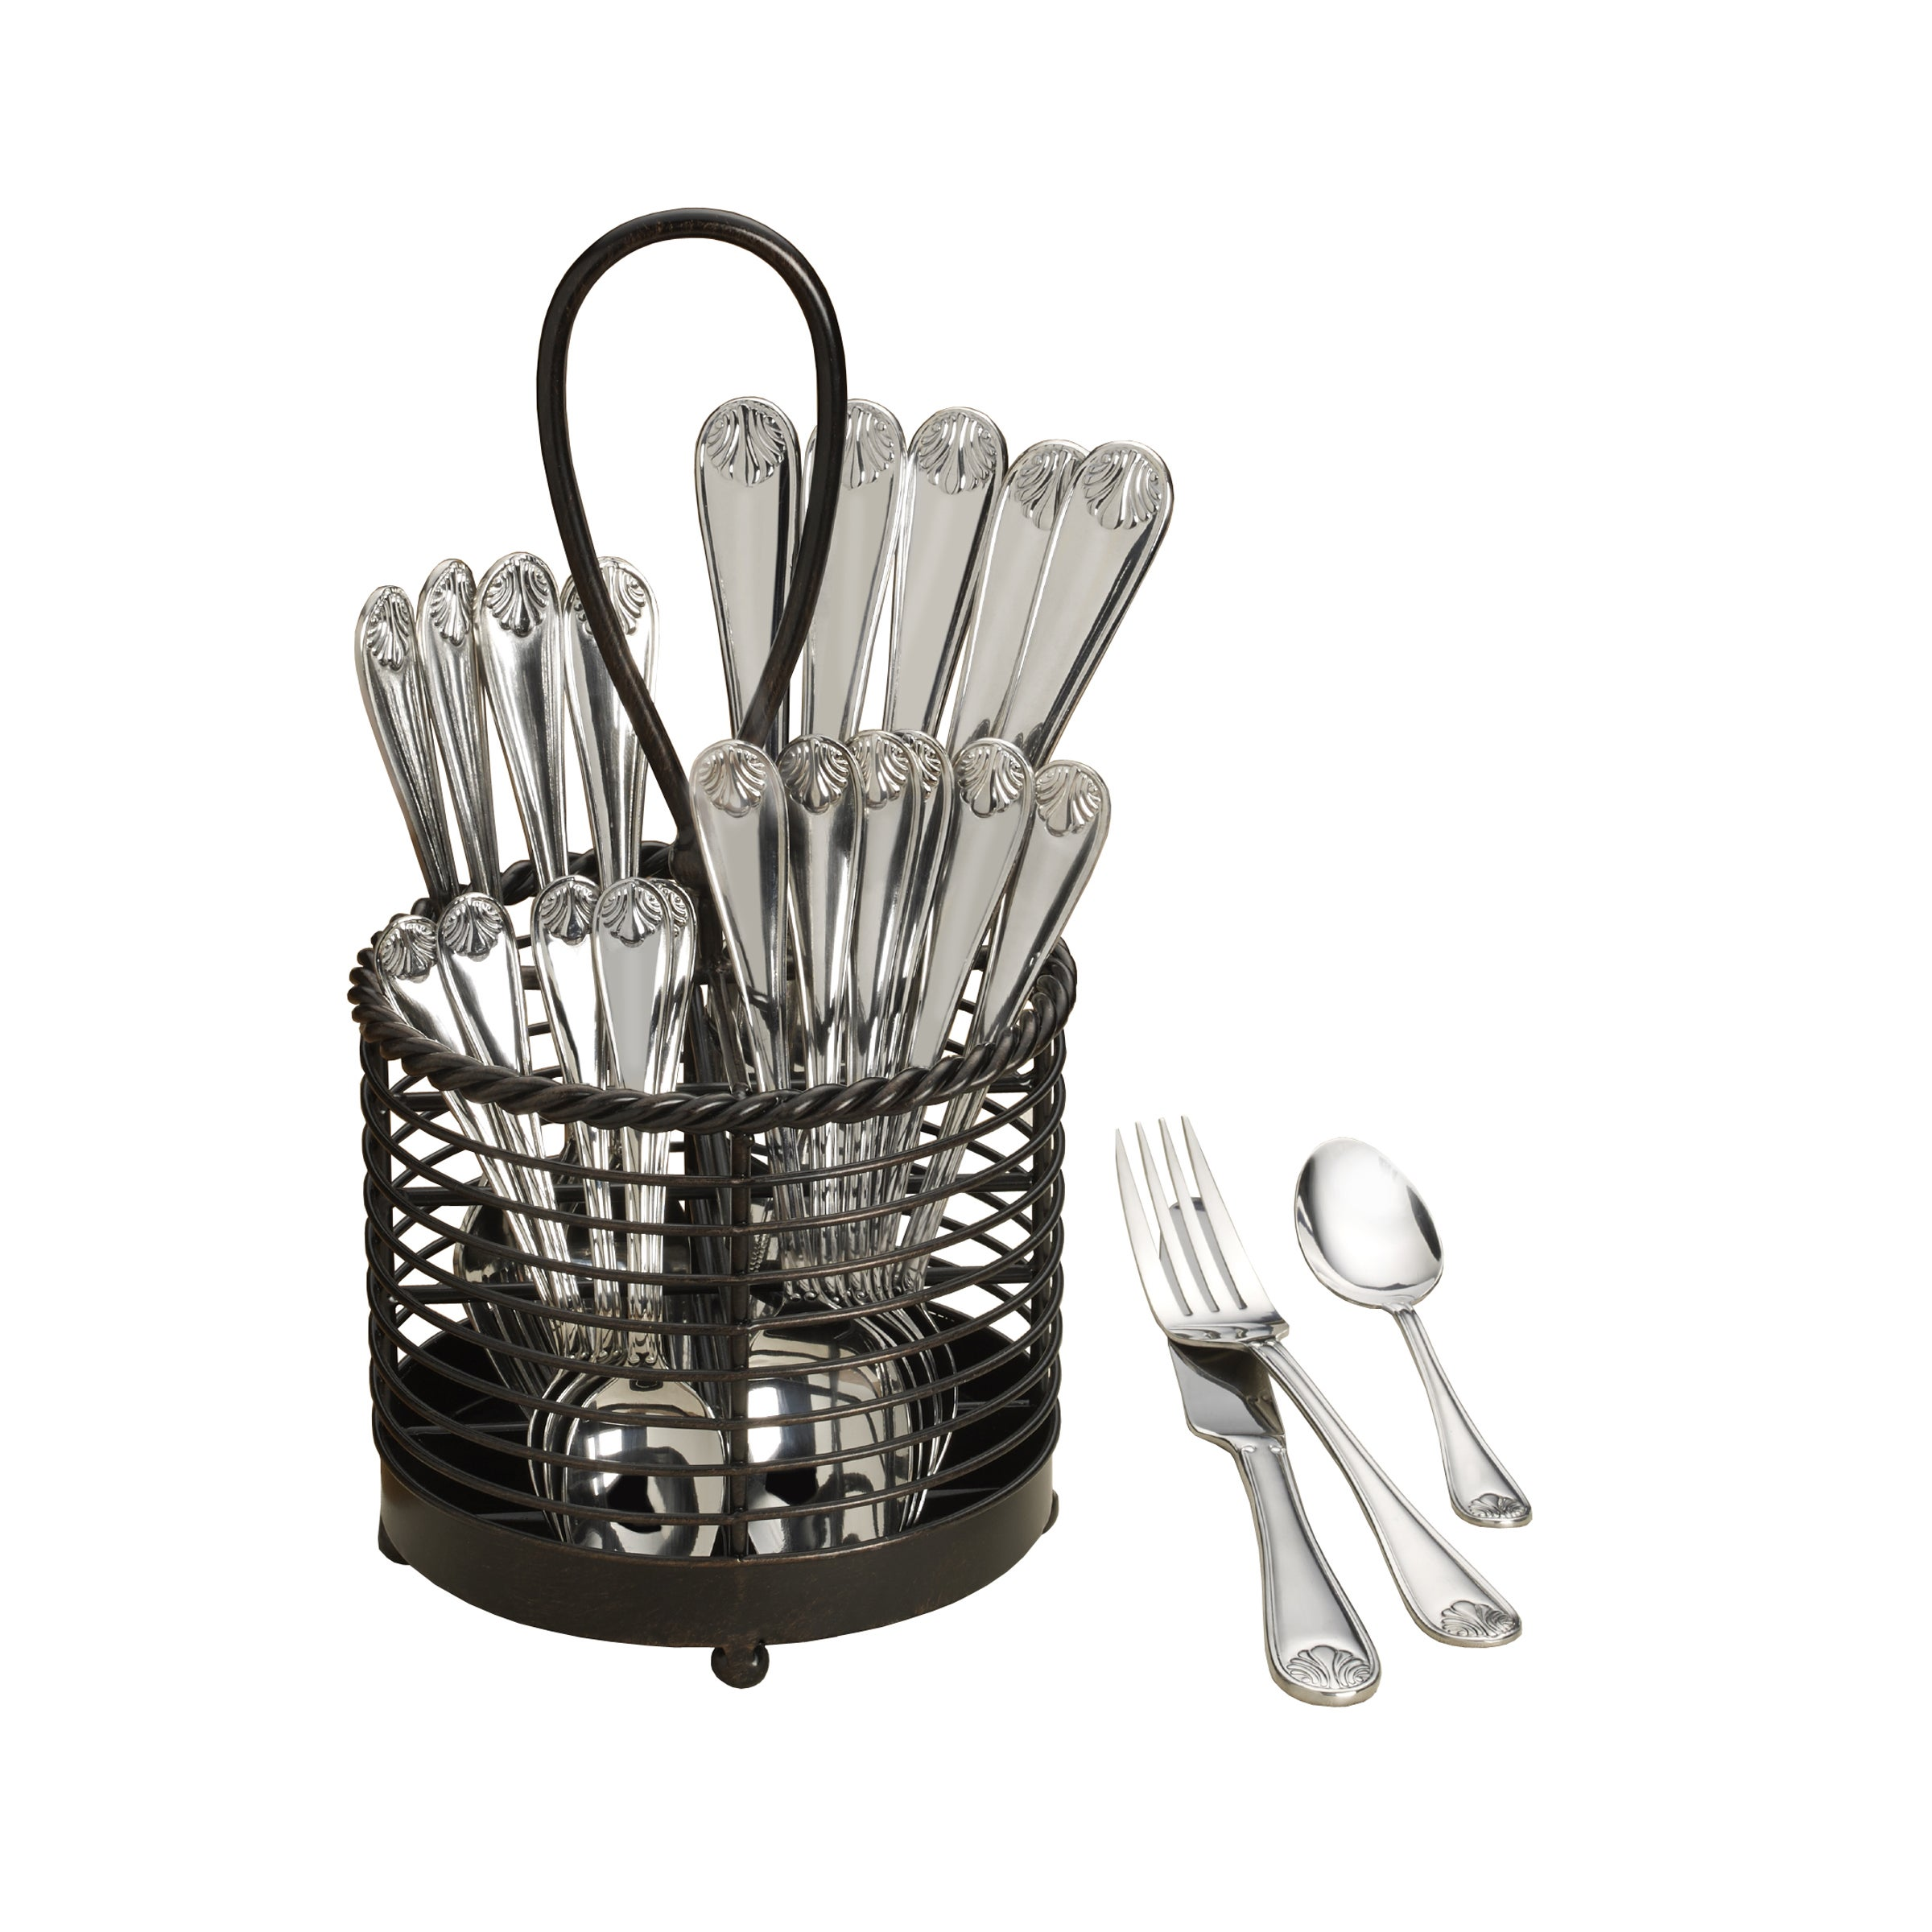 Towle Everyday Sandy Shores Silver Stainless Steel 32-pie...